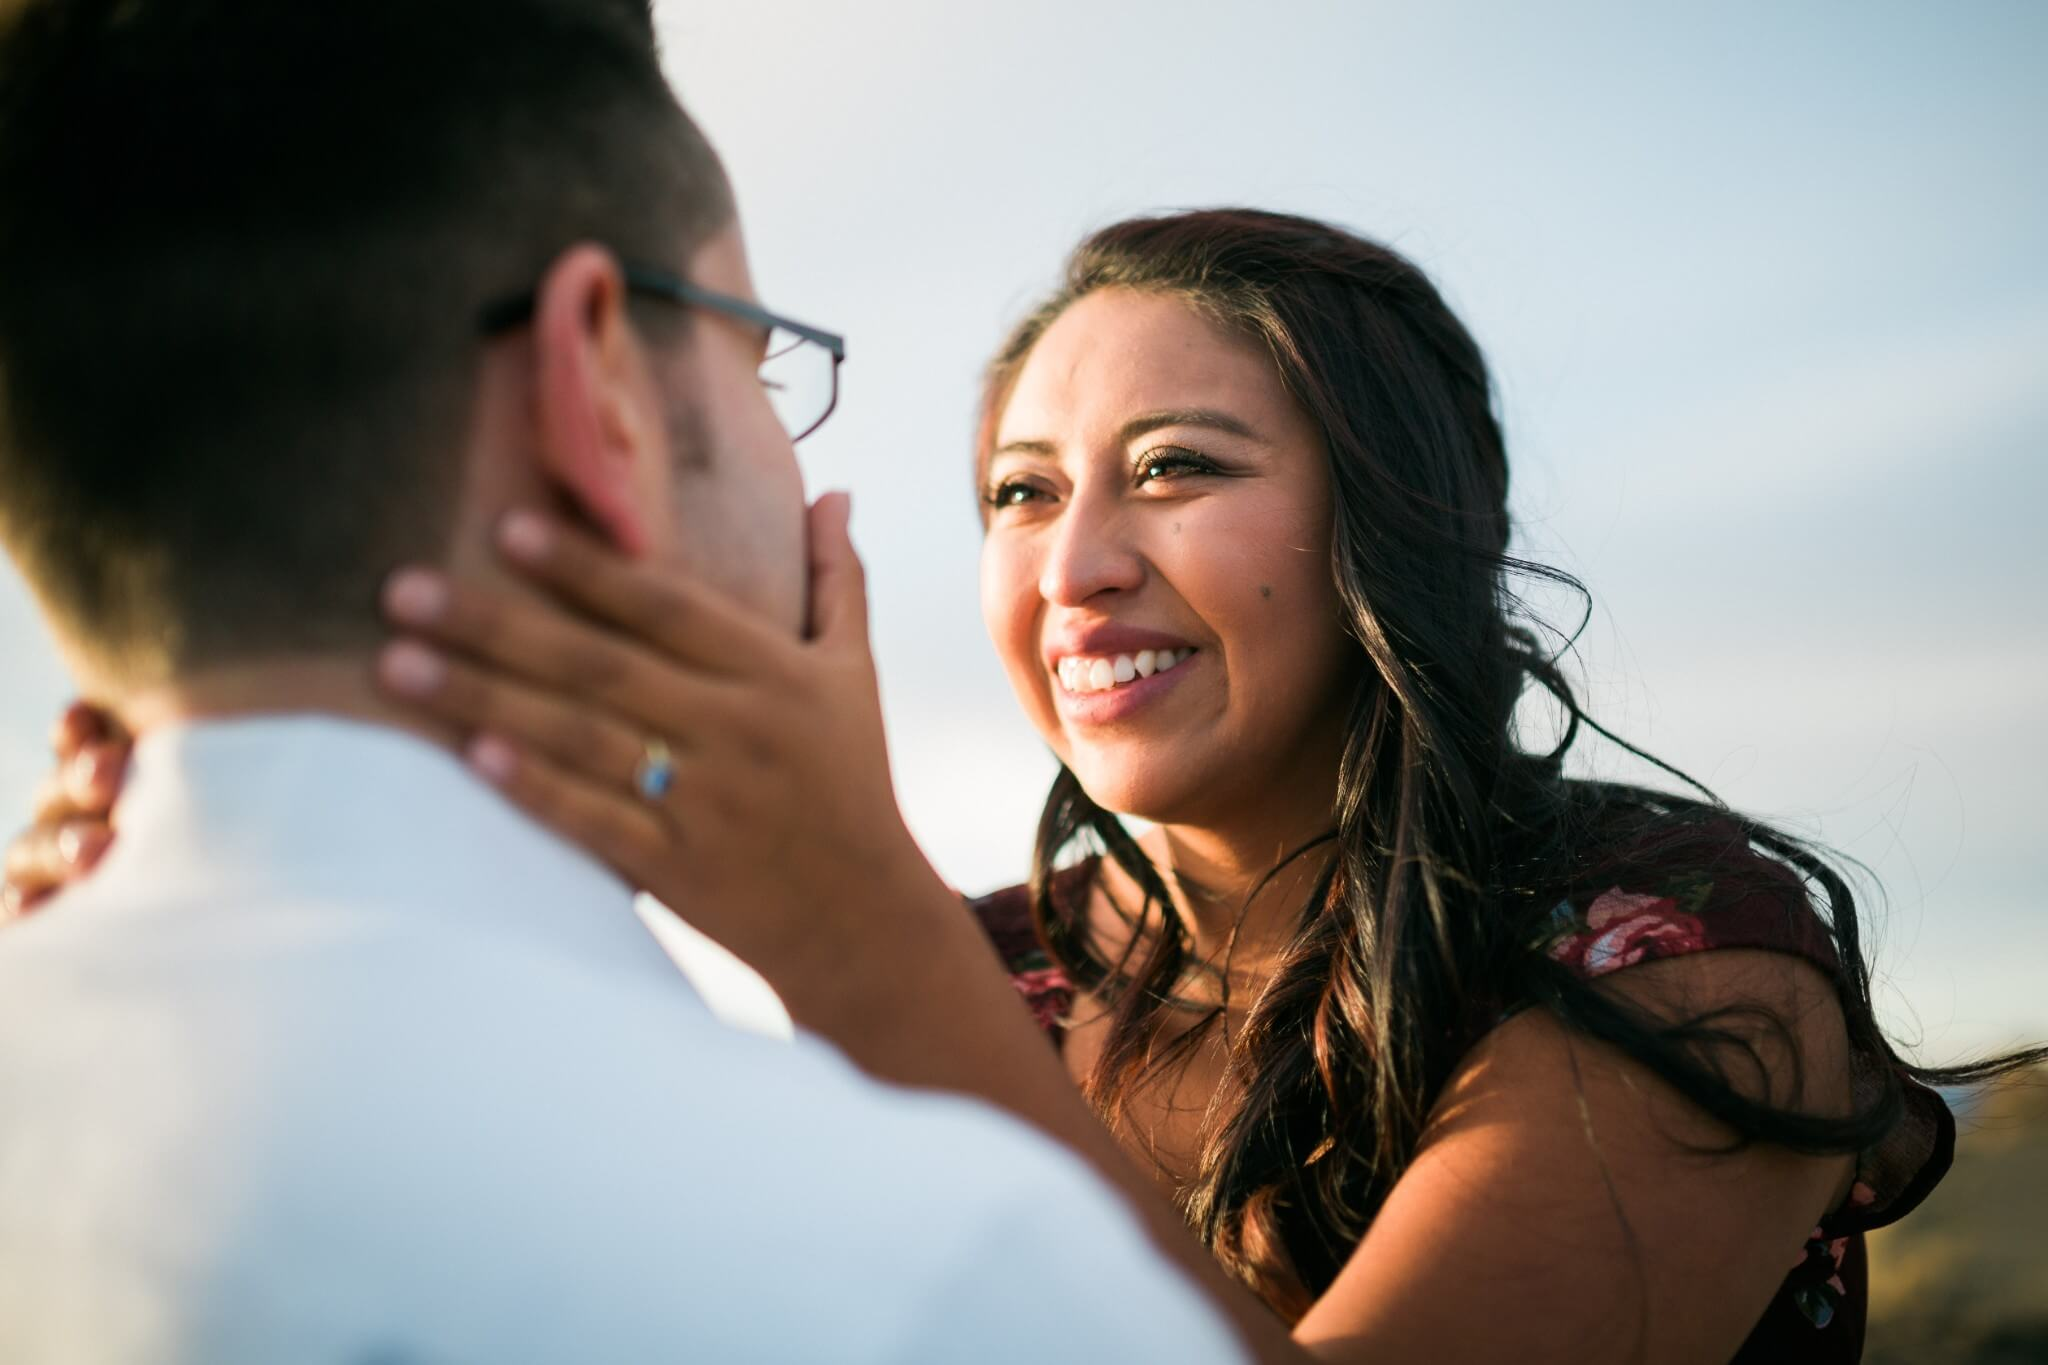 Lesly & Michael Vantage Engagement by Bill Weisgerber Spokane Photographer (31 of 71).jpg